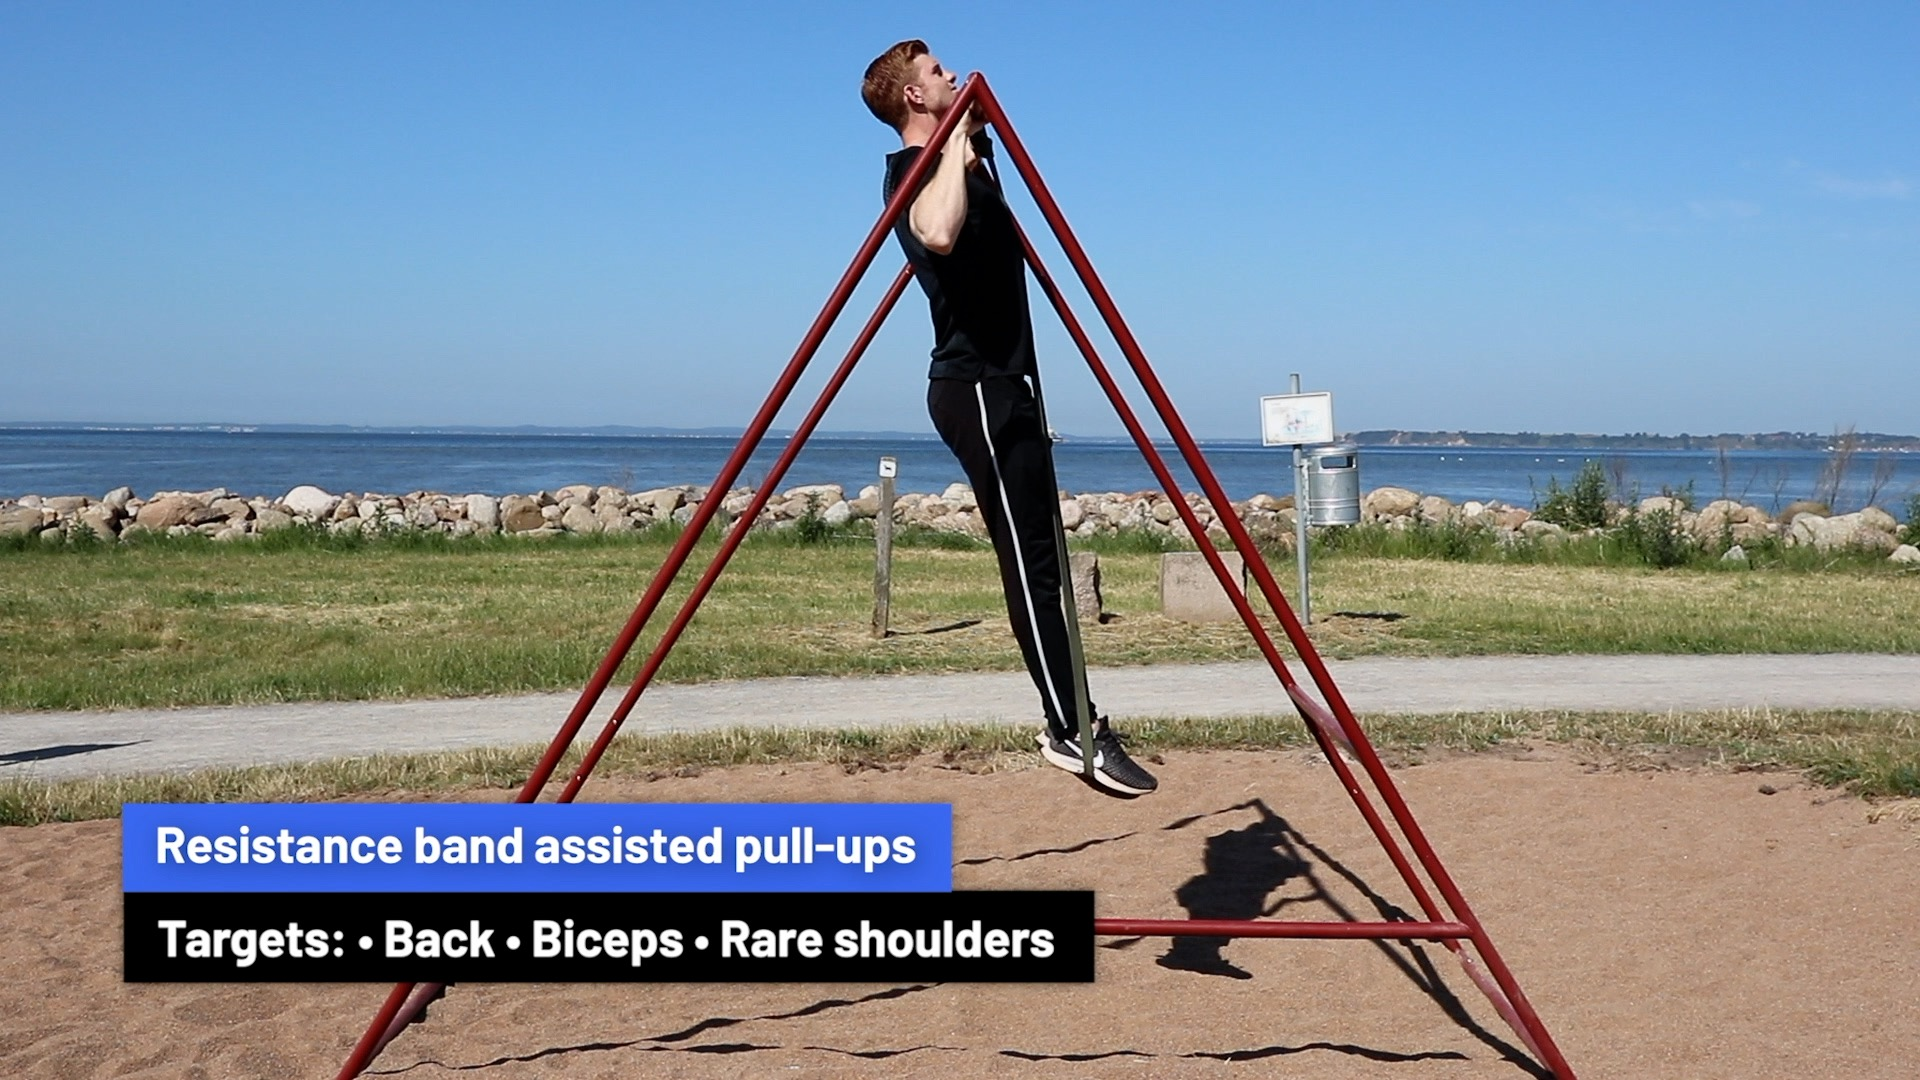 Resistance band assisted pull-ups